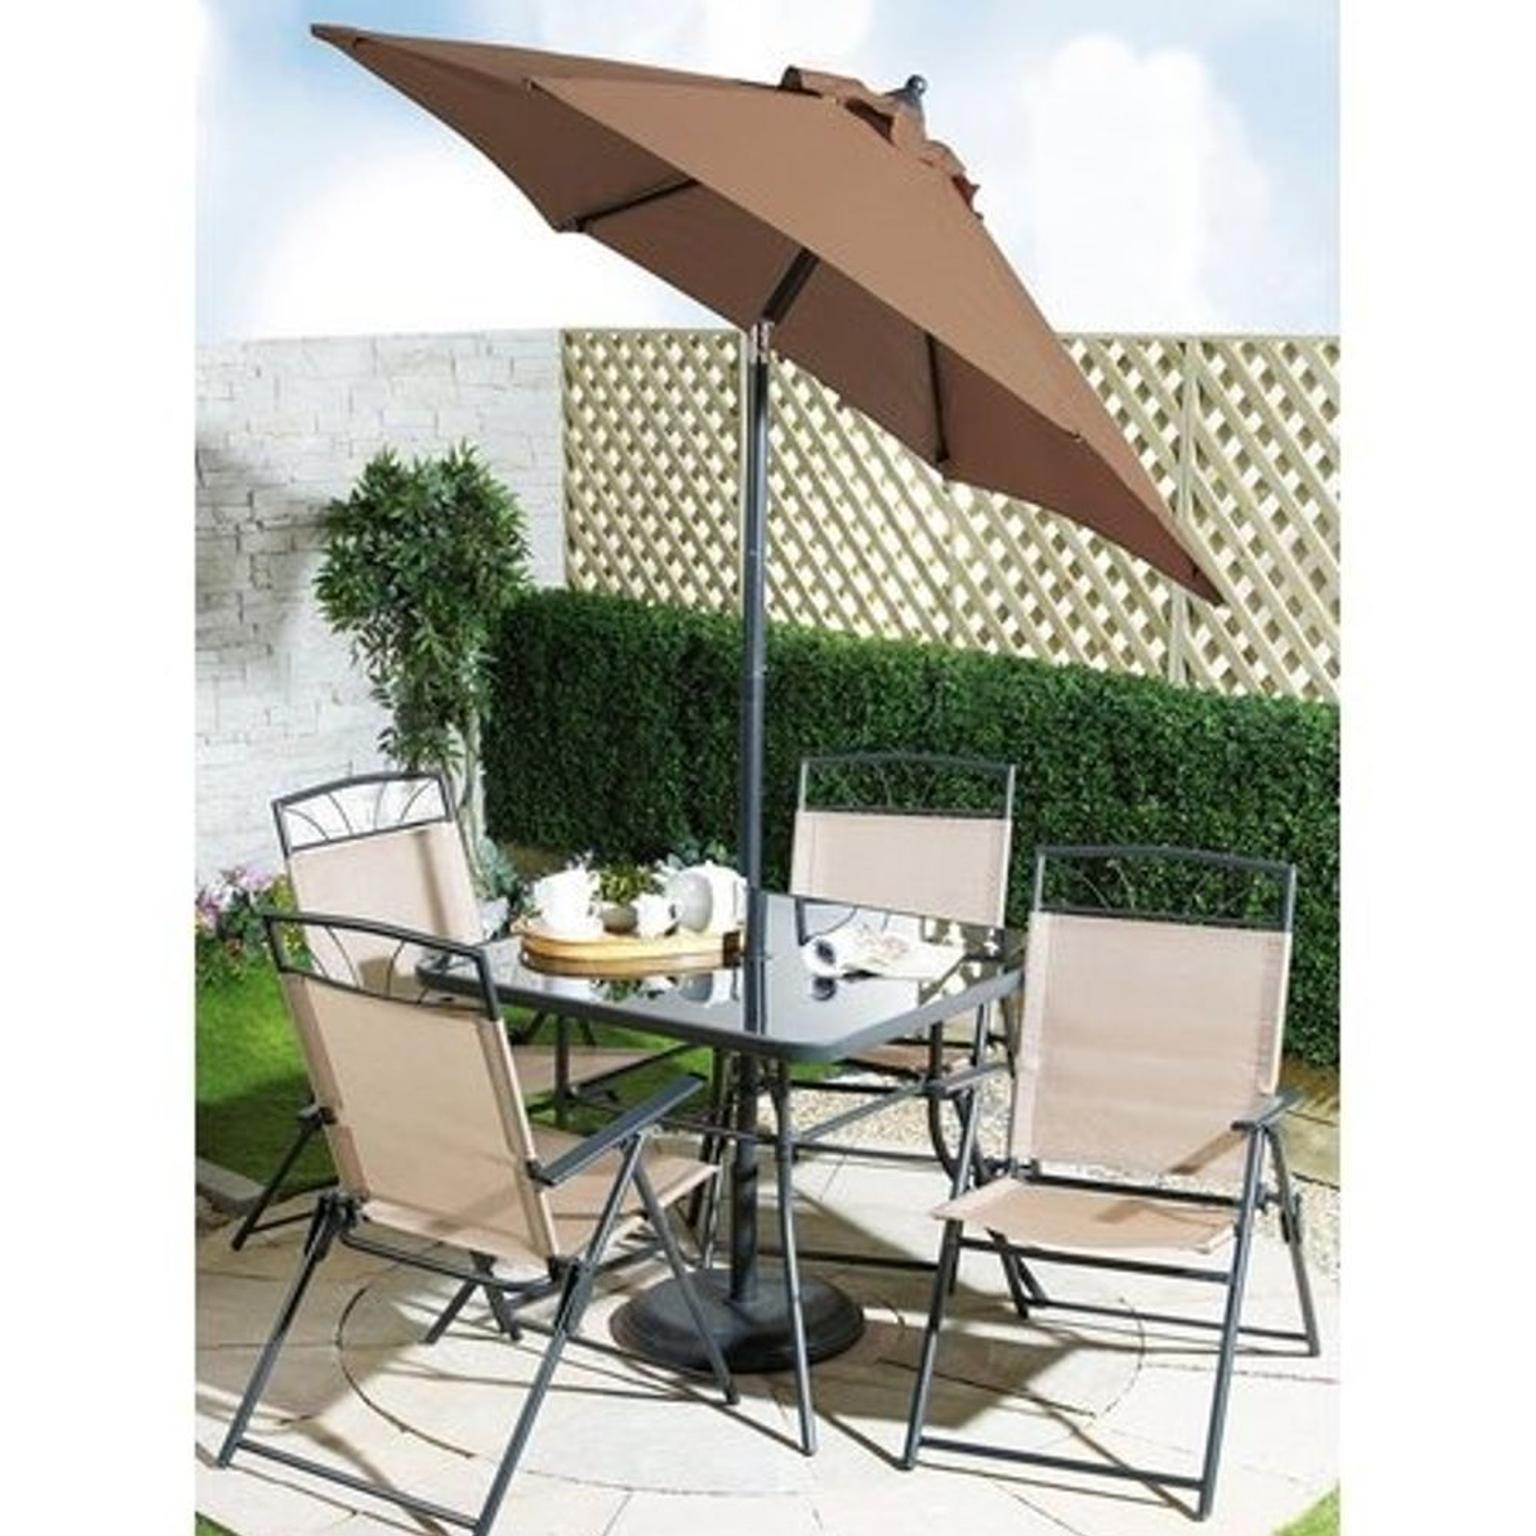 Kent 6 Piece Copper Garden Outdoor Patio Set In M350bn Failsworth For 95 00 Shpock